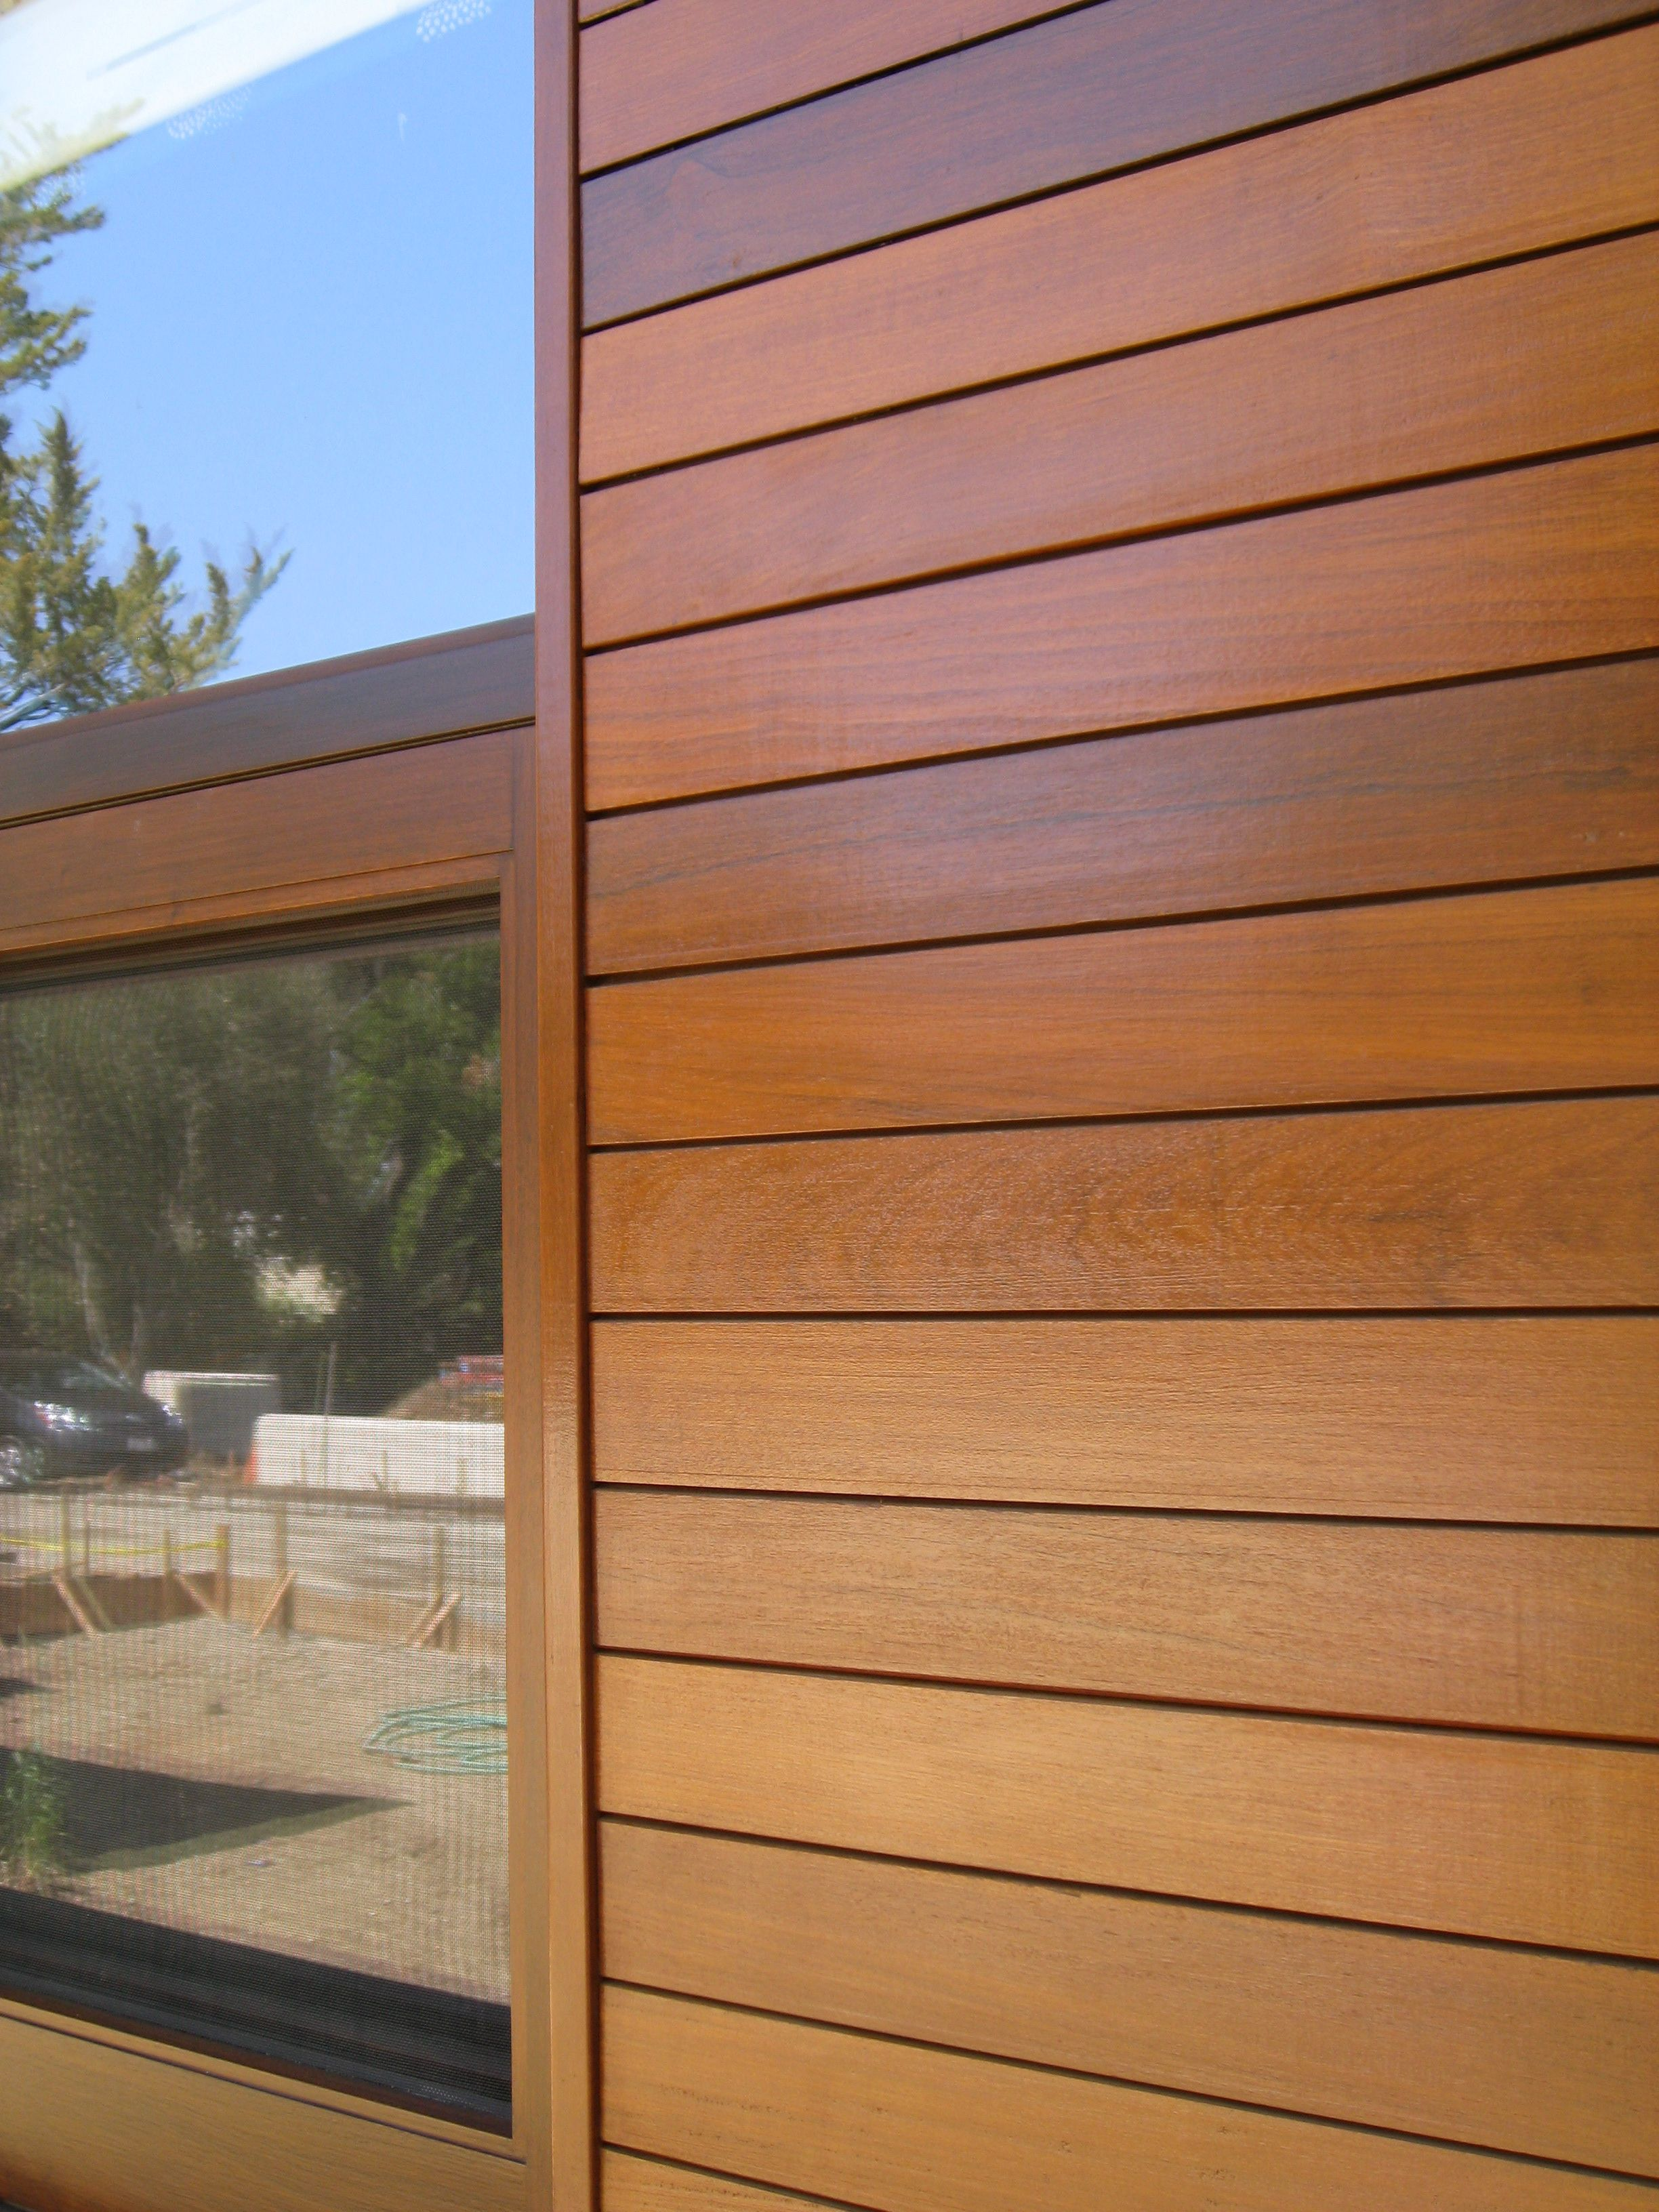 Ipe siding rainscreen google search new house ipe for New siding colors